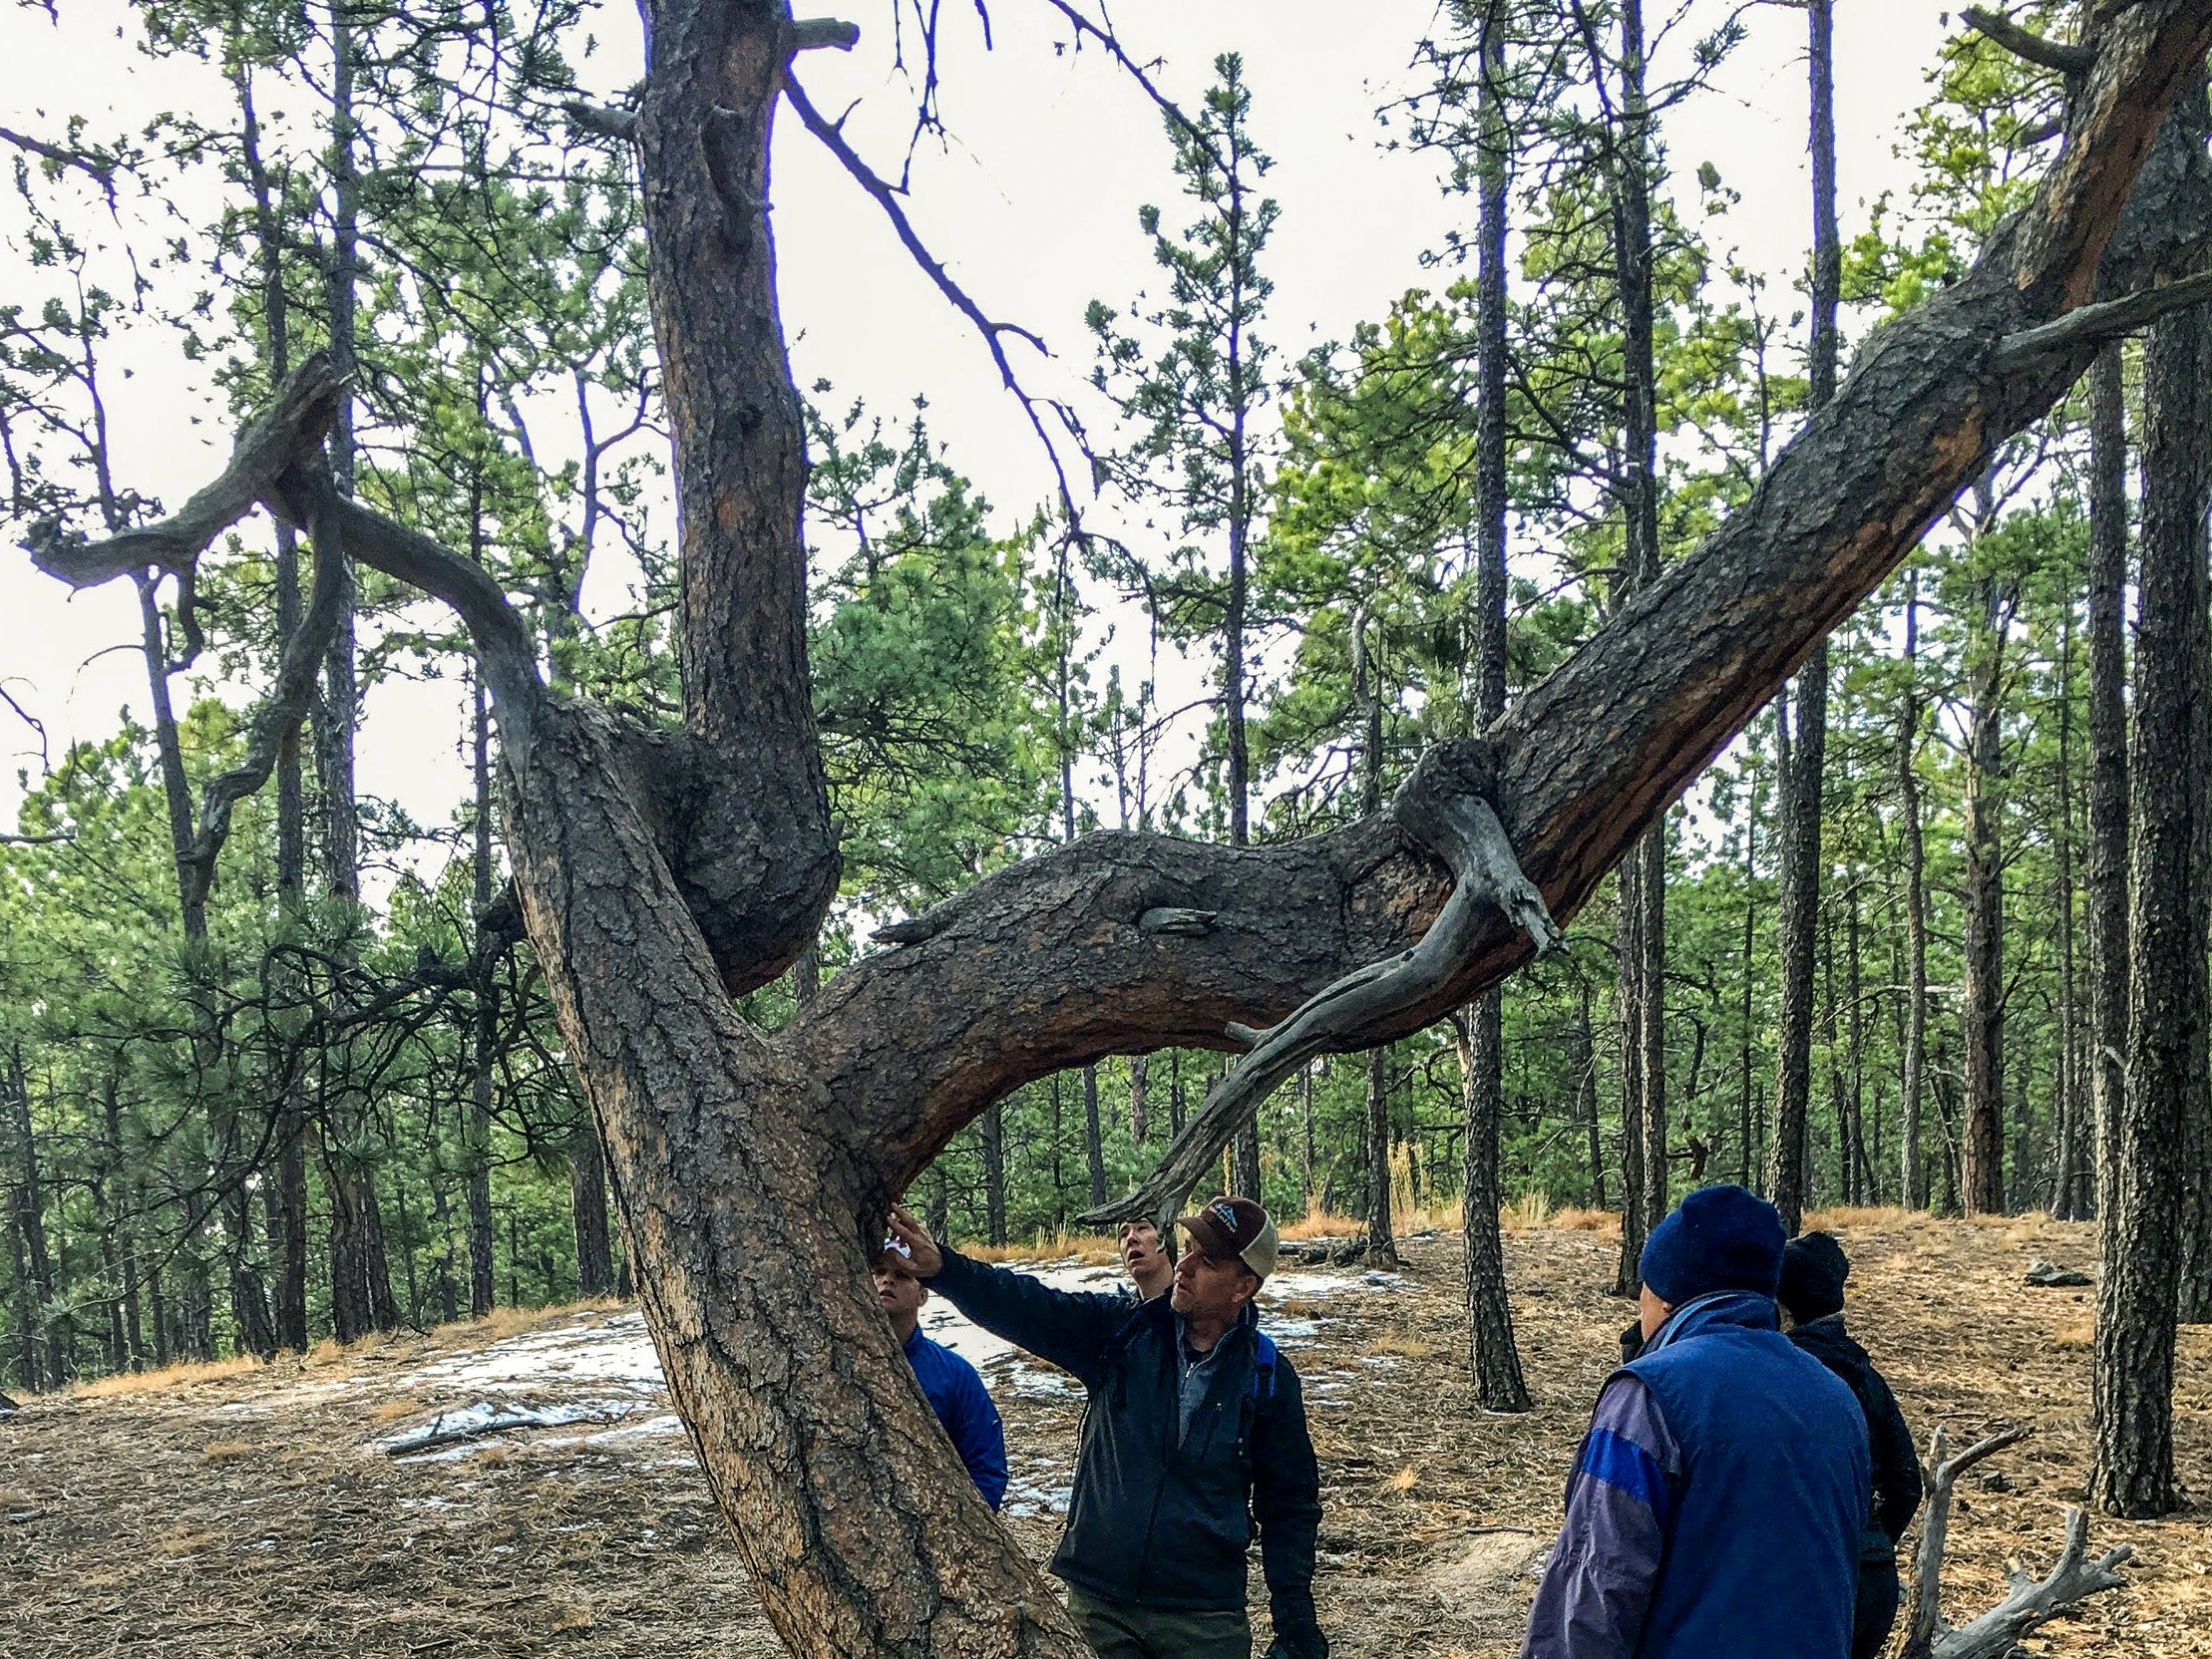 Twisted Trees Trail - Difficulty: EasyTime: 2 HoursDistance: 1 - 3 Miles